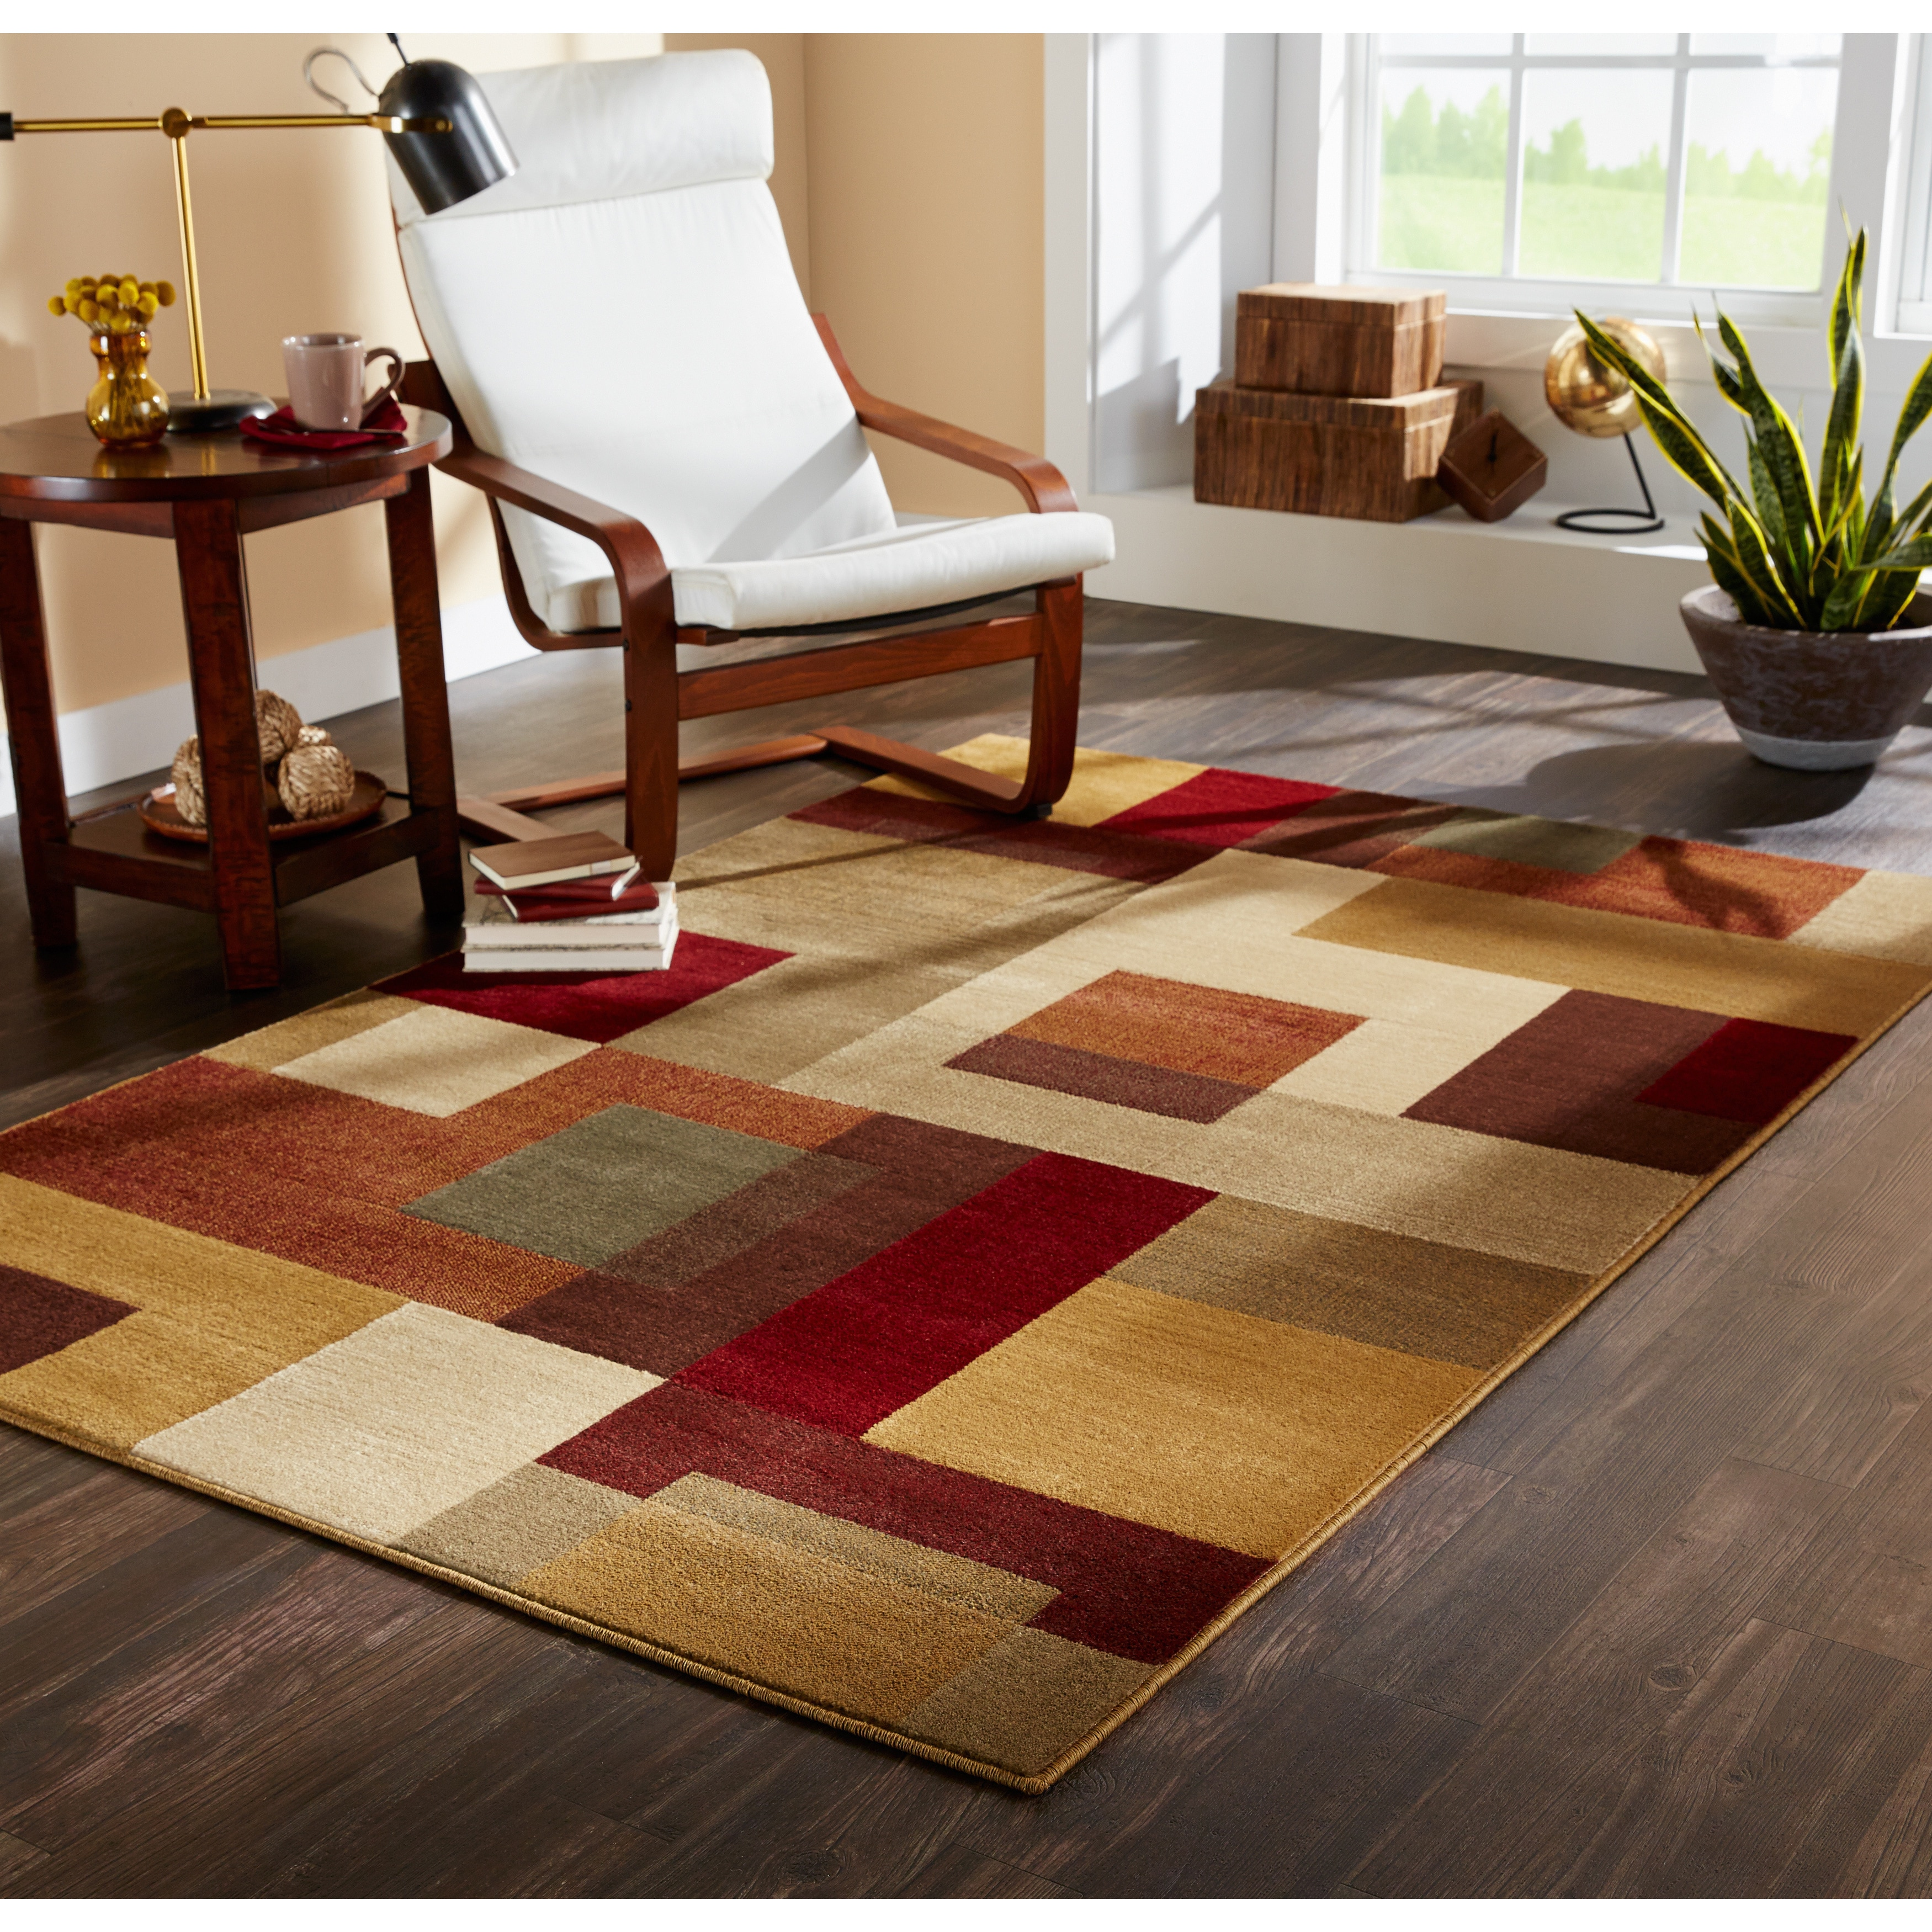 Shop Patchwork Block Brown And Deep Red Area Rug 8 2 X 10